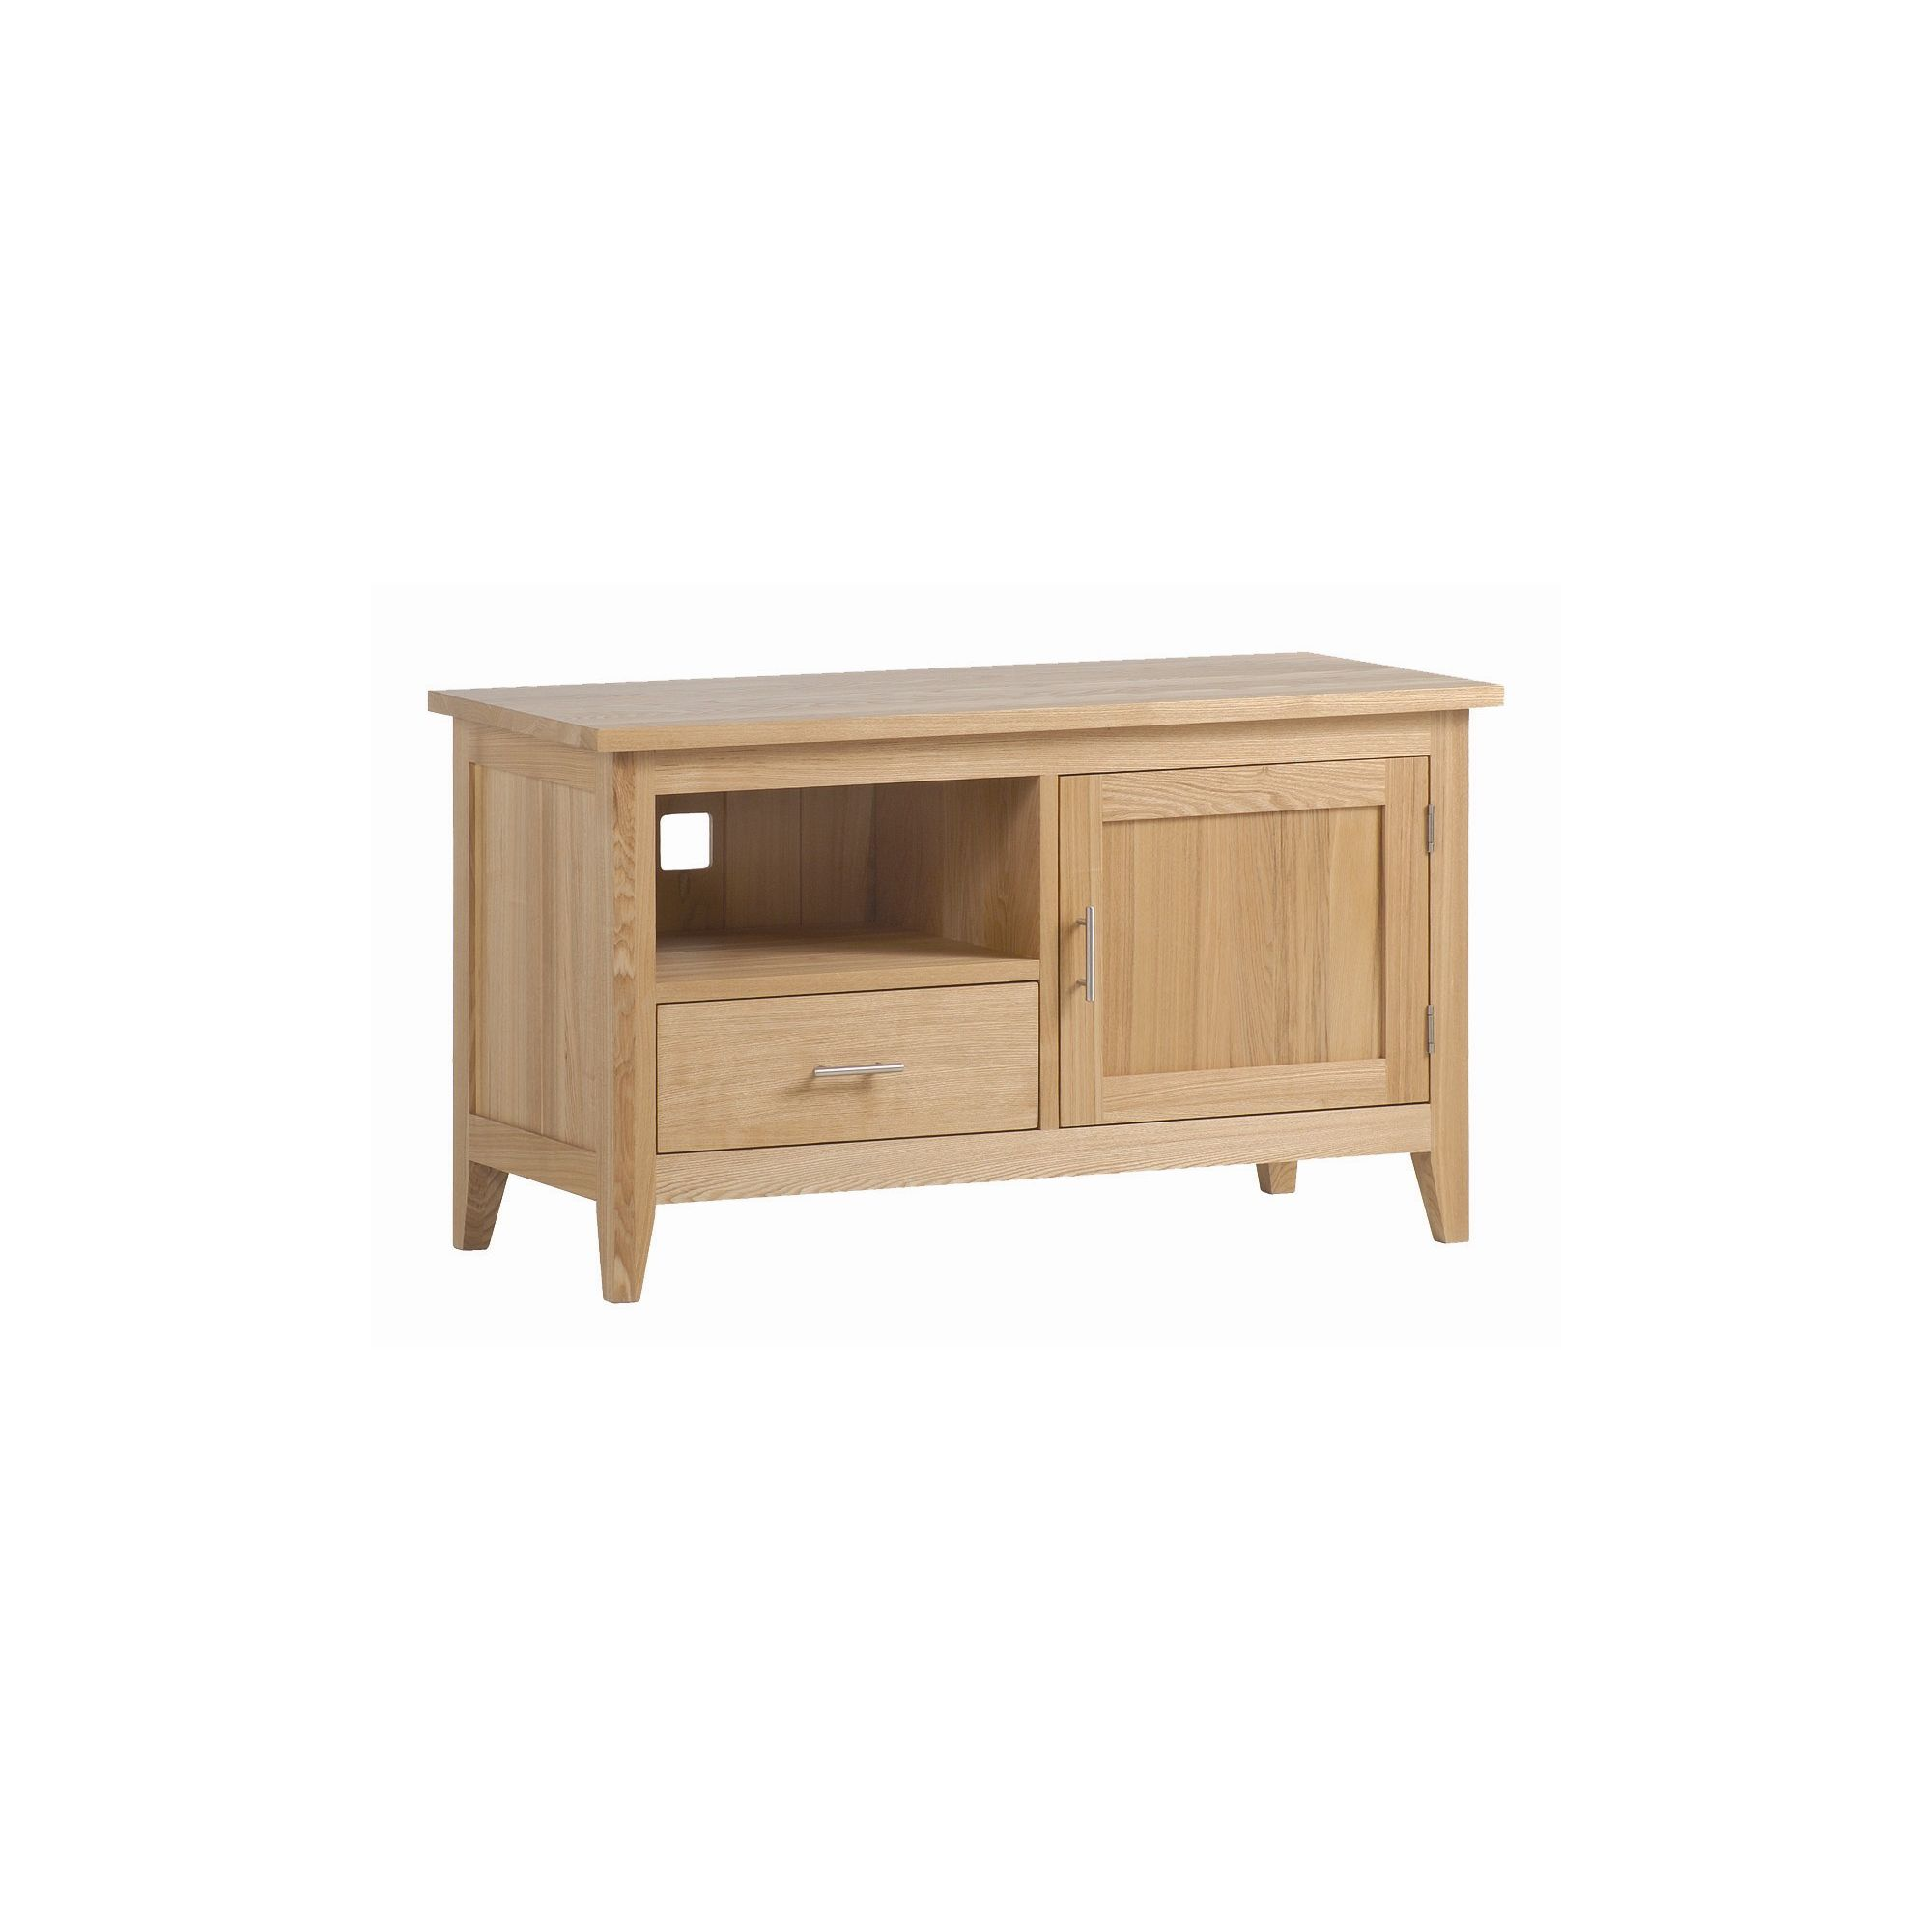 Kelburn Furniture Carlton Ash Wooden TV Cabinet with Cabinet Door at Tesco Direct